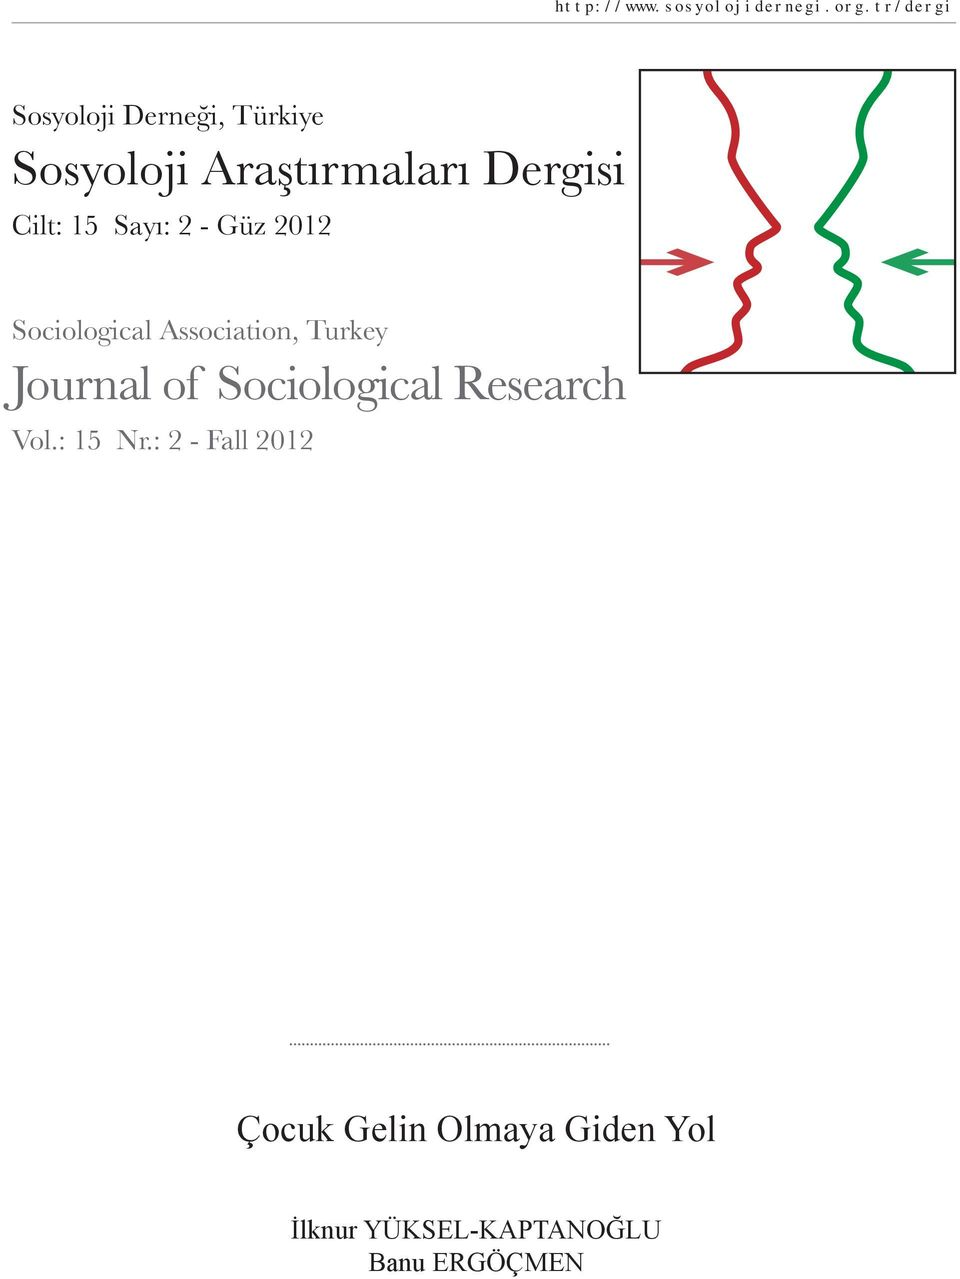 Cilt: 15 Sayı: 2 - Güz 2012 Sociological Association, Turkey Journal of